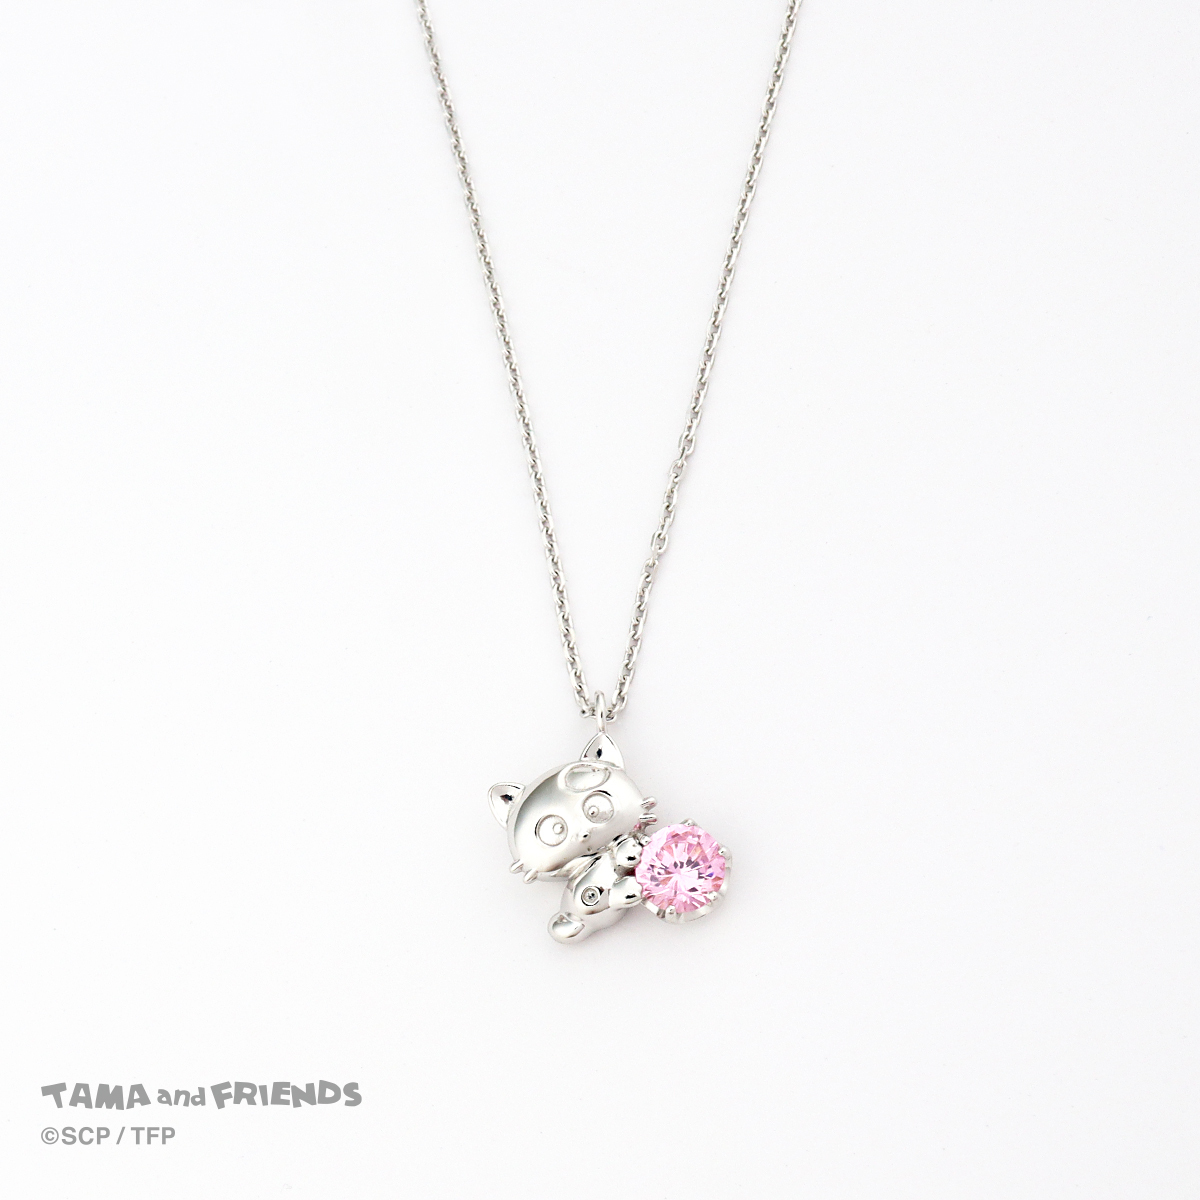 Tama and Friends 12color necklace